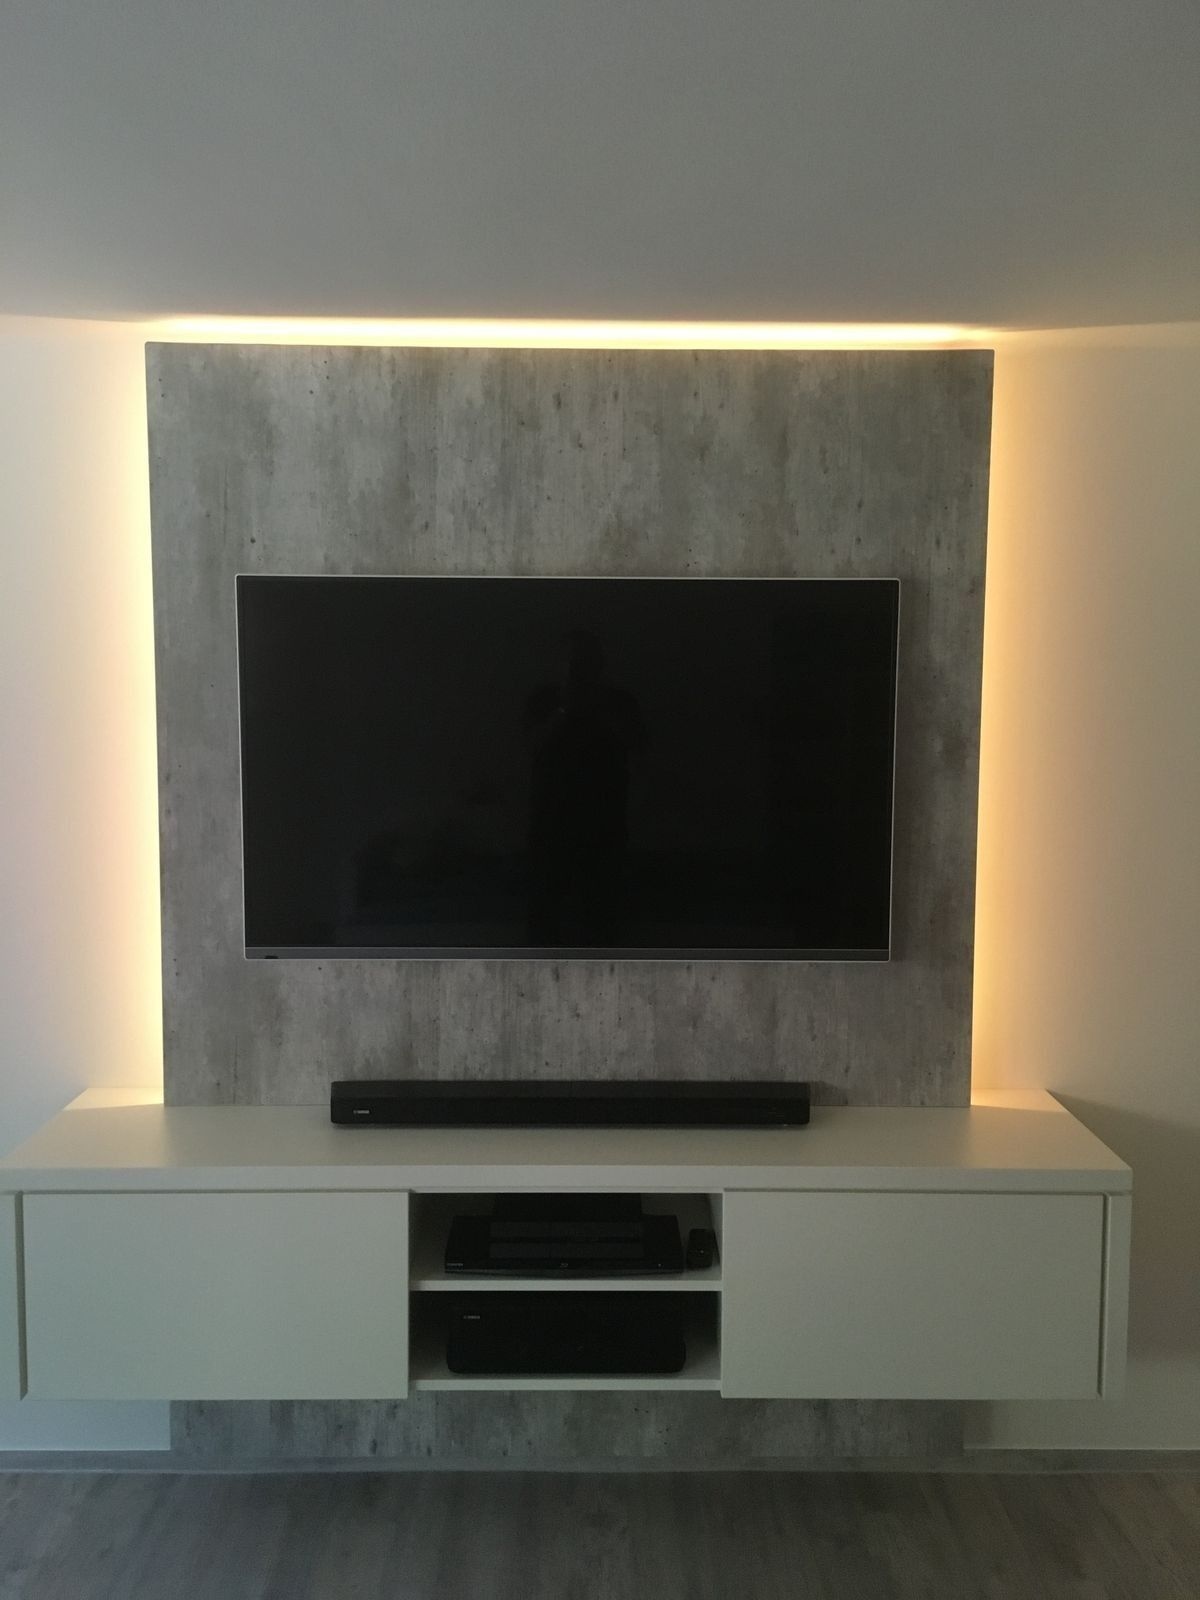 Tv In Wand Pin De Lariza Seañez En Diy | Muebles Para Tv, Muebles Flotantes Para Tv, Televisores En La Pared